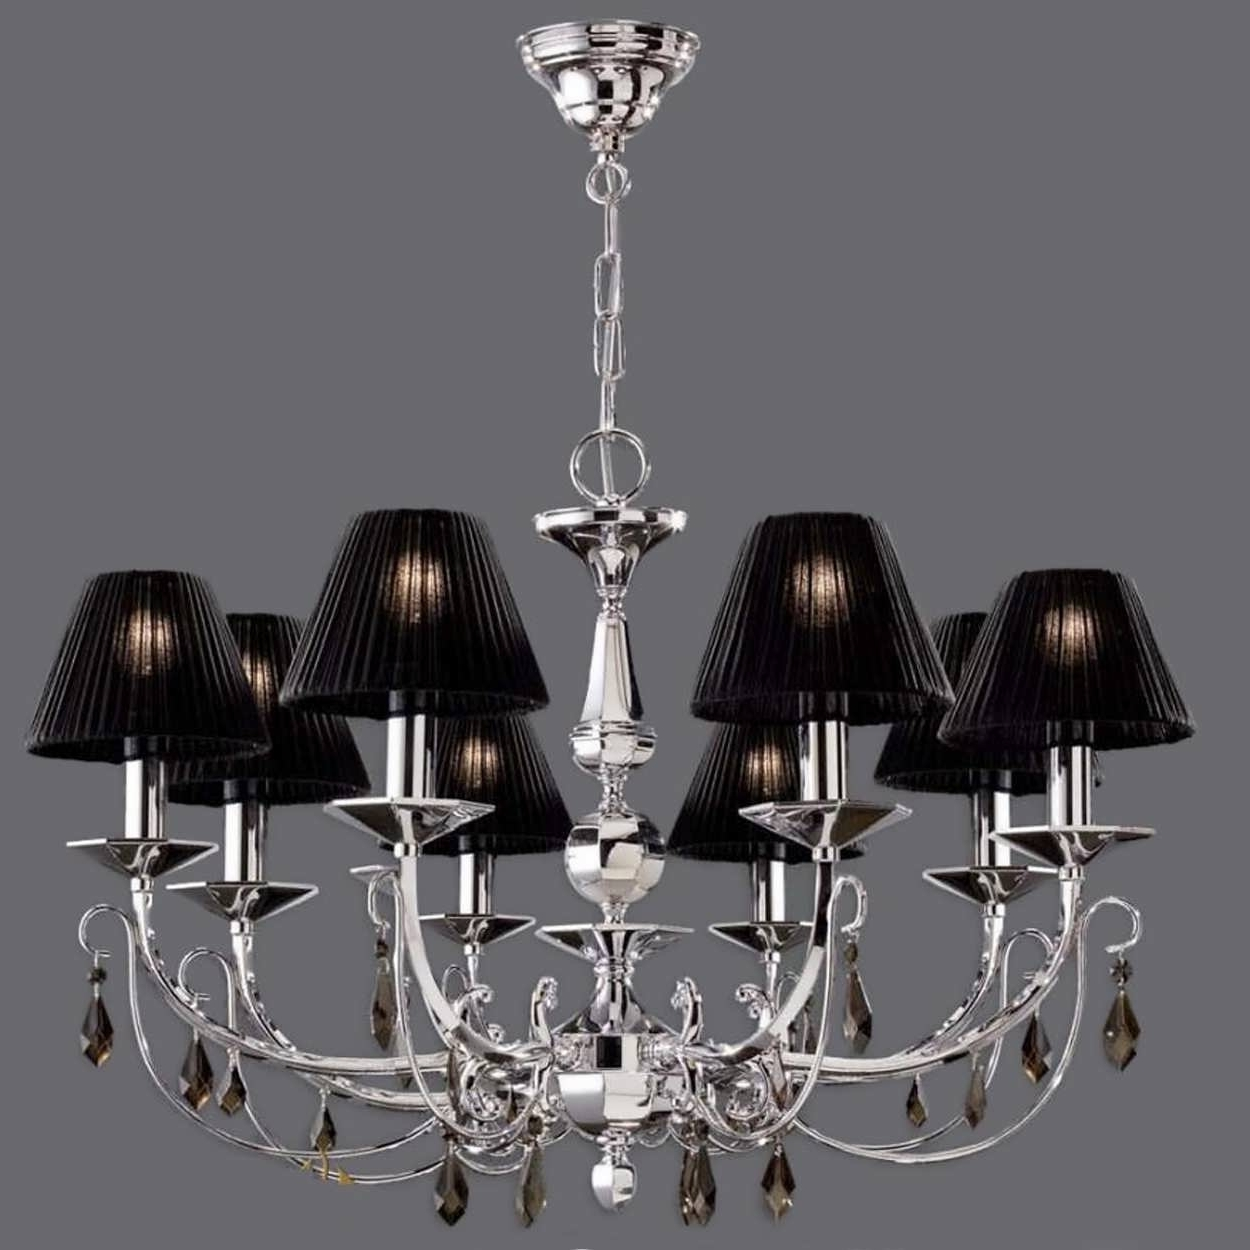 Latest Small Base Chandelier Bulbs Silver Earrings White Lamp Shades Diy Intended For Chandeliers With Lamp Shades (View 14 of 20)